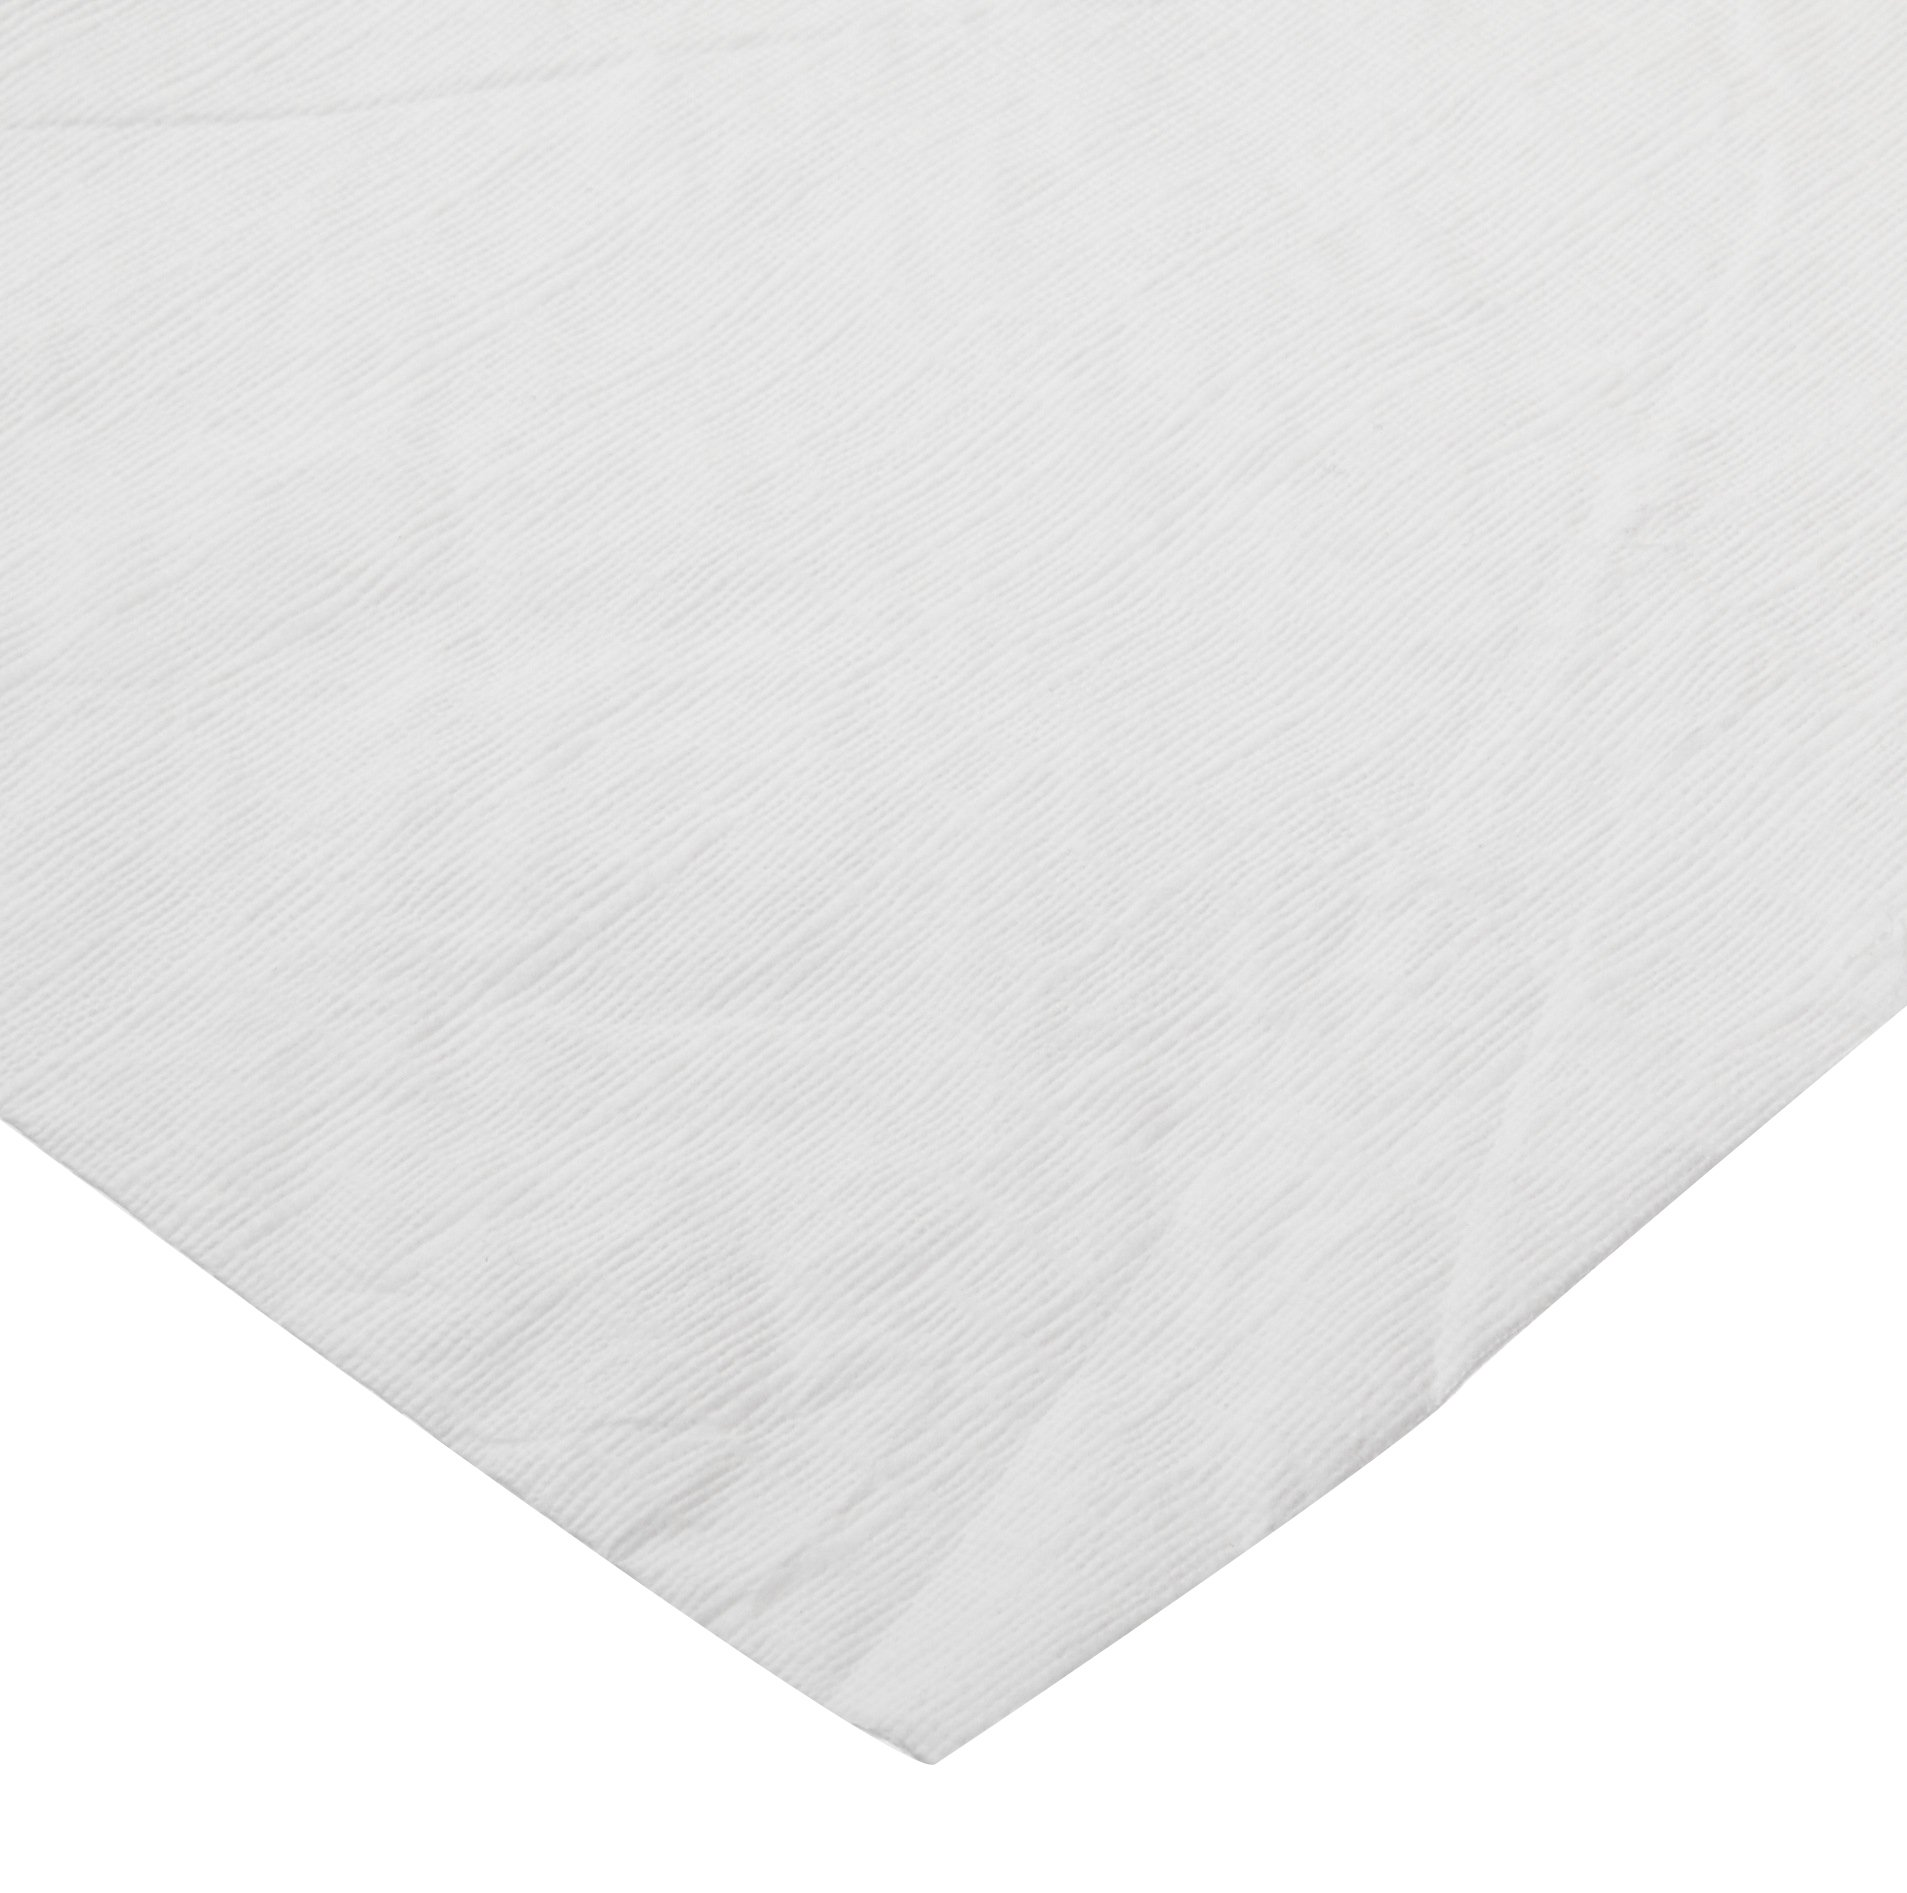 Hoffmaster 210100 Octy-Round Tissue Tablecover, 2 Ply, 72'' Diameter, White (Case of 25) by Hoffmaster (Image #2)